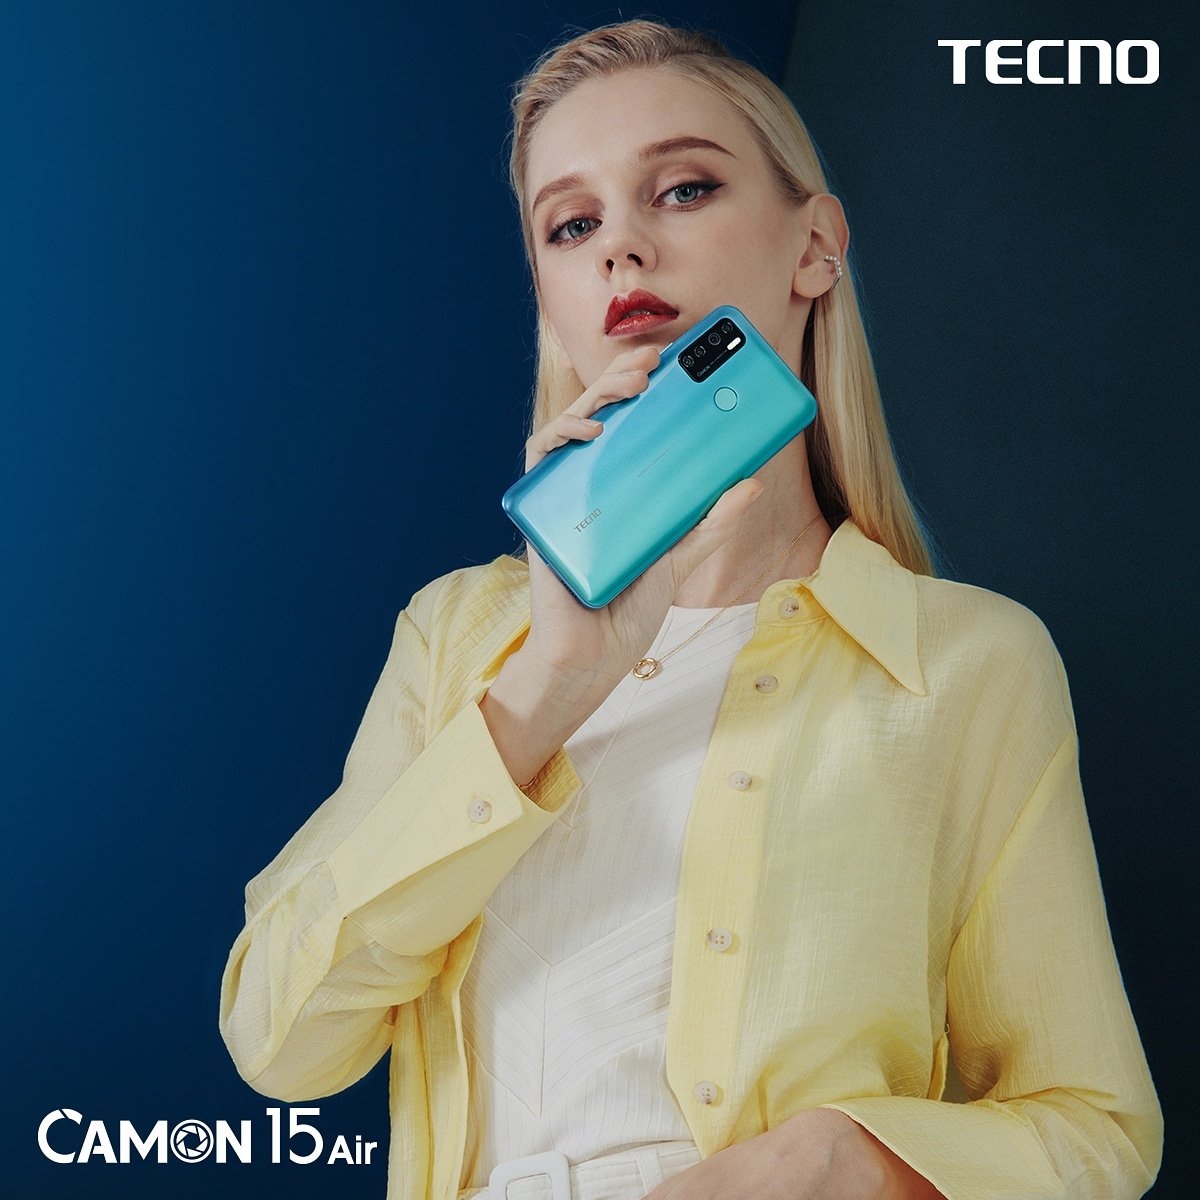 Get the new Camon 15 Air and begin your journey to becoming a true photography genius. Available in accredited Tecno shops at 895 cedis. #Camon15Air #UltraClearDayAndNight #TecnoGhana https://t.co/7FjcD5aweZ